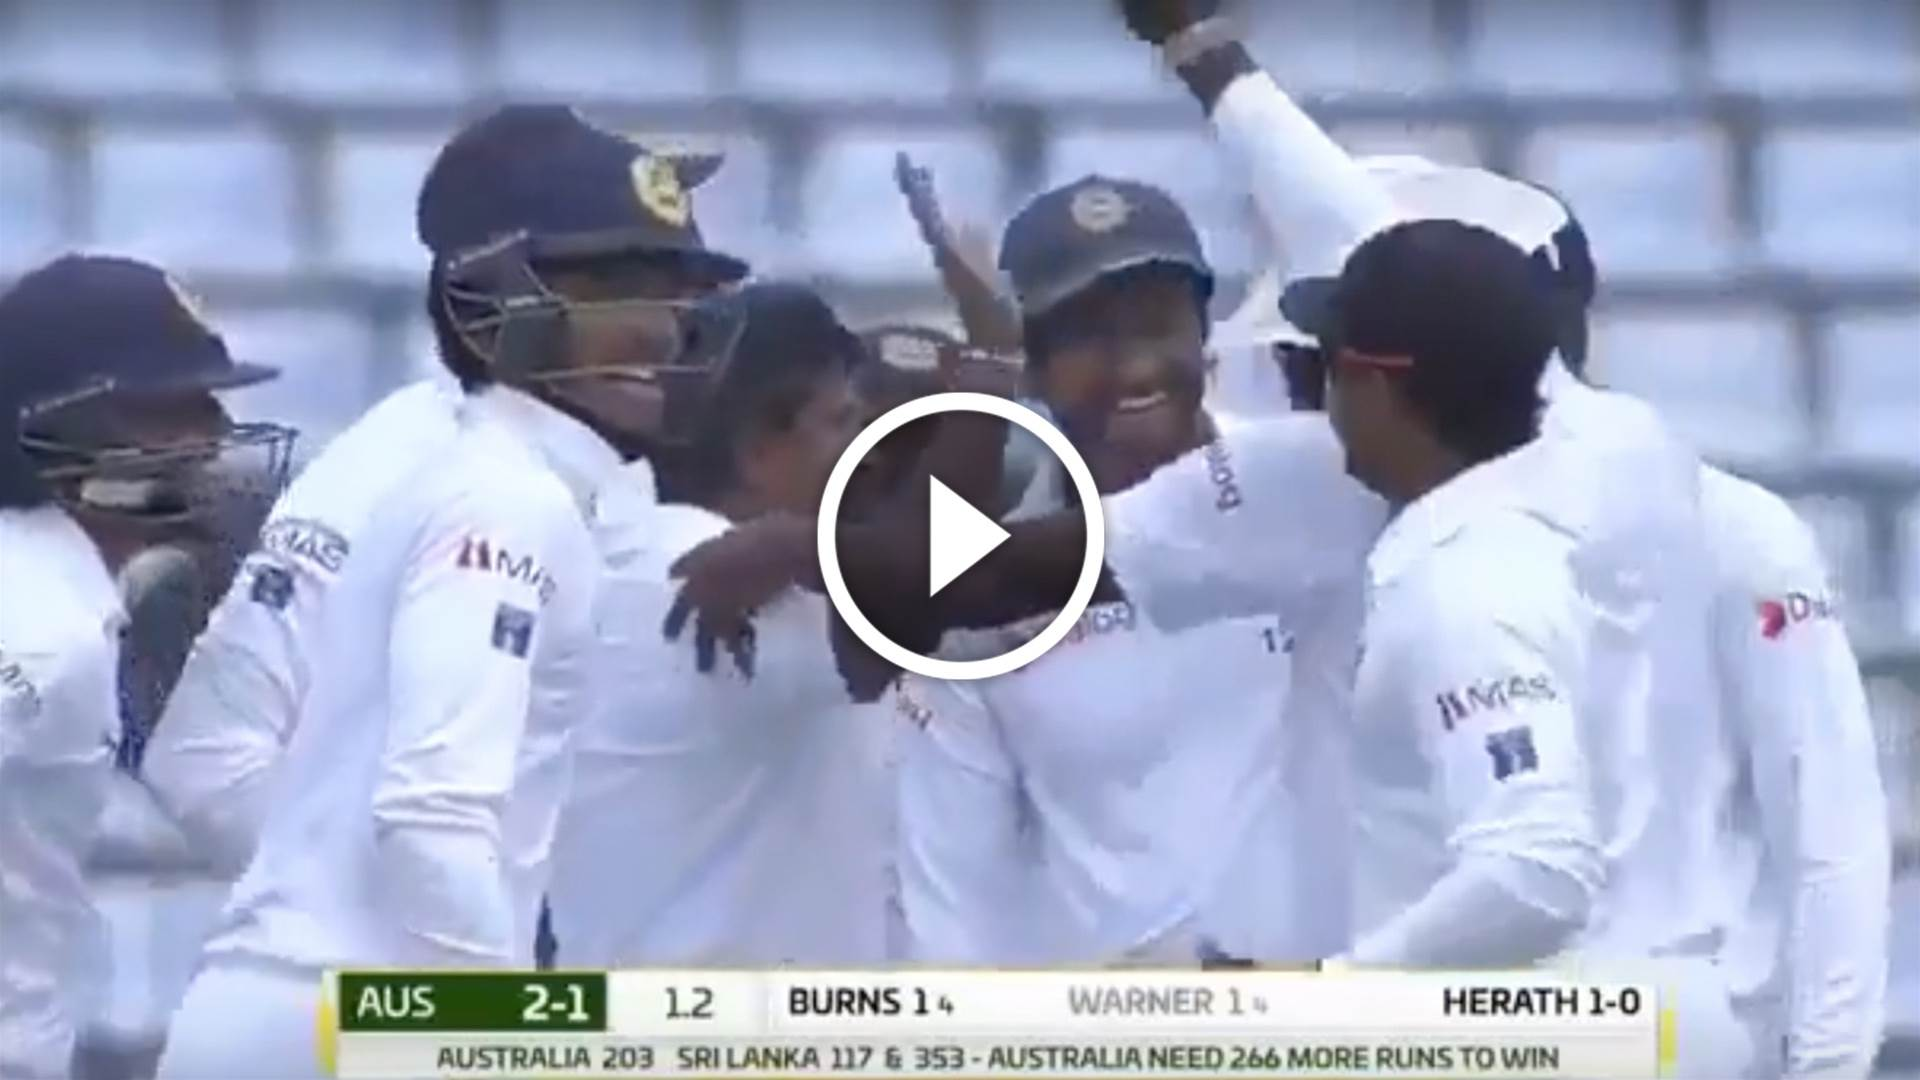 Herath wreaks havoc on day 5